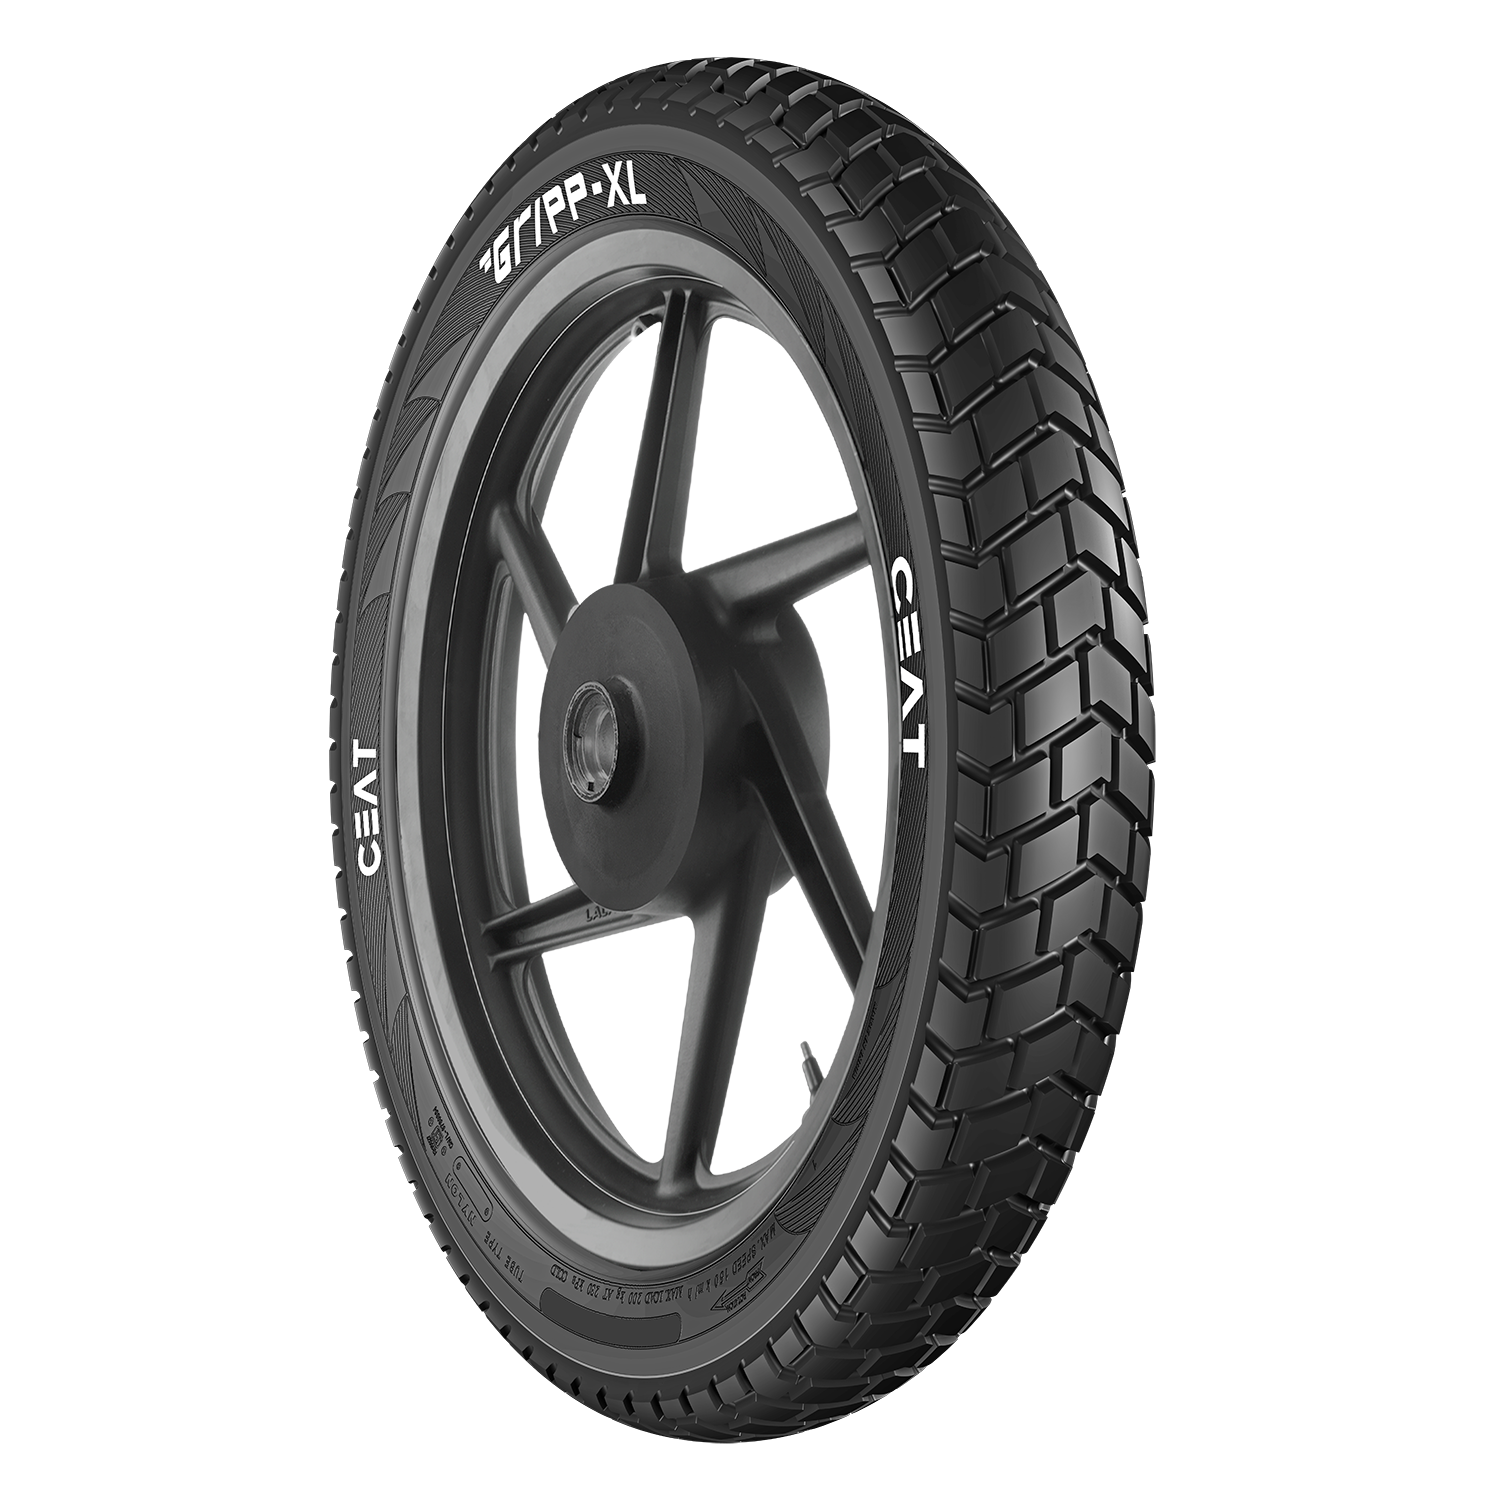 Ceat Gripp Xl 3 00 18 Requires Tube P Rear Two Wheeler